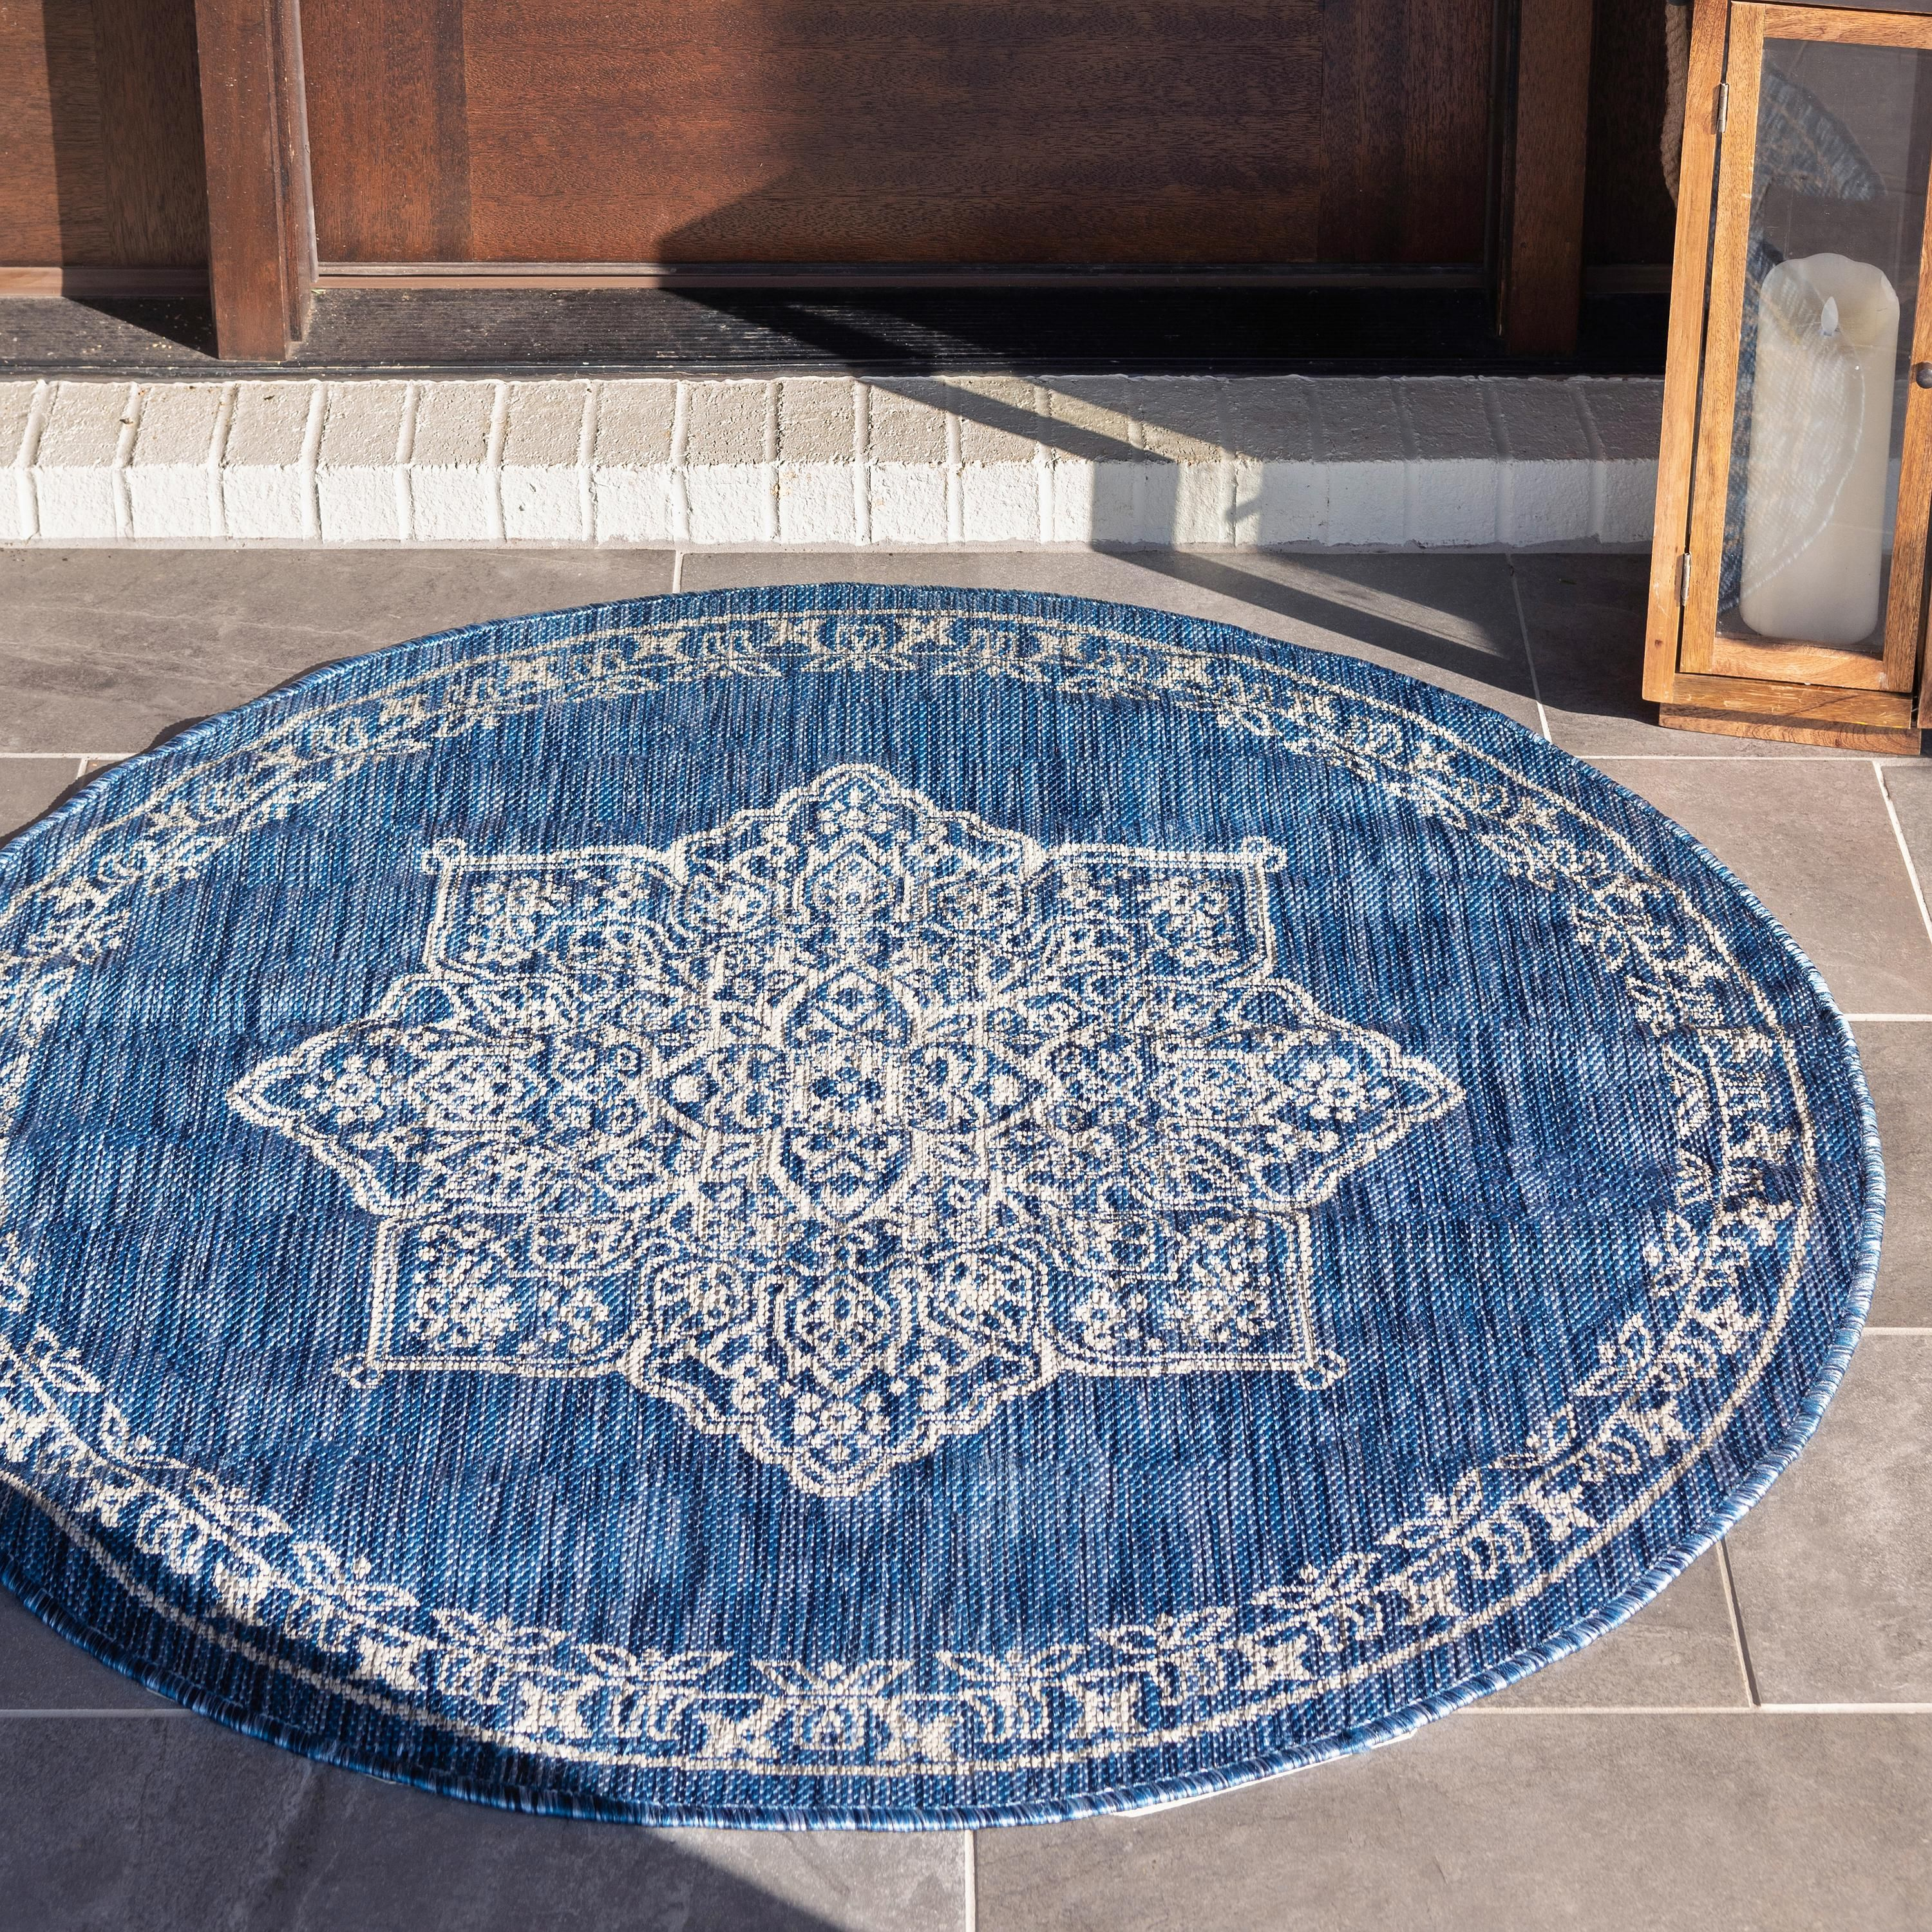 Blue 4 X 4 Outdoor Traditional Round Rug Ad Outdoor Blue Rug Traditional Sponsored Round Area Rugs Outdoor Rugs Area Rugs